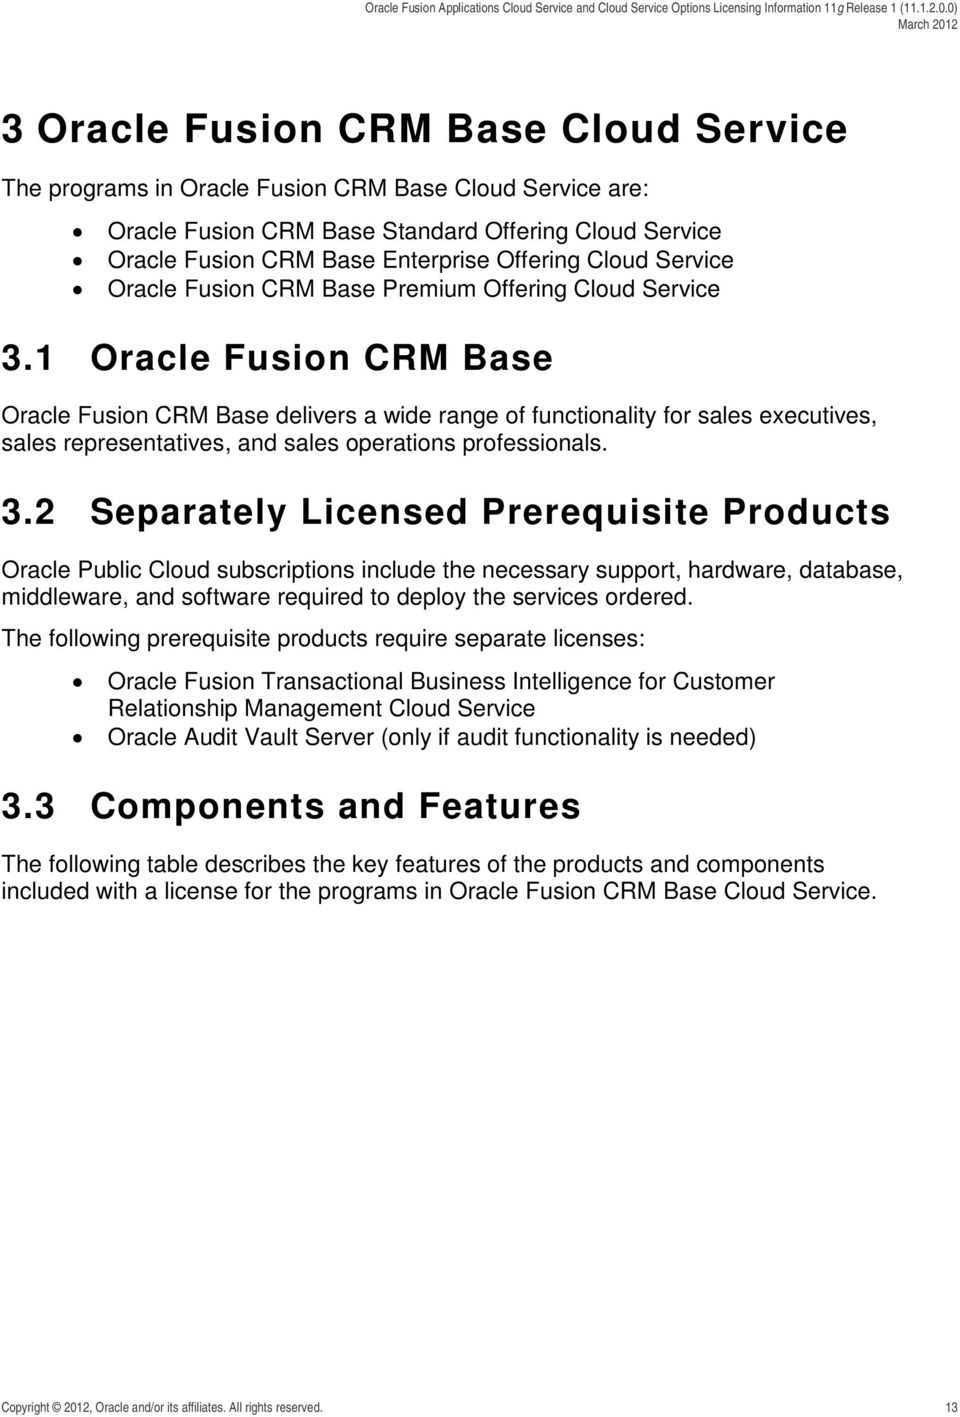 1 Oracle Fusion CRM Base Oracle Fusion CRM Base delivers a wide range of functionality for sales executives, sales representatives, and sales operations professionals. 3.